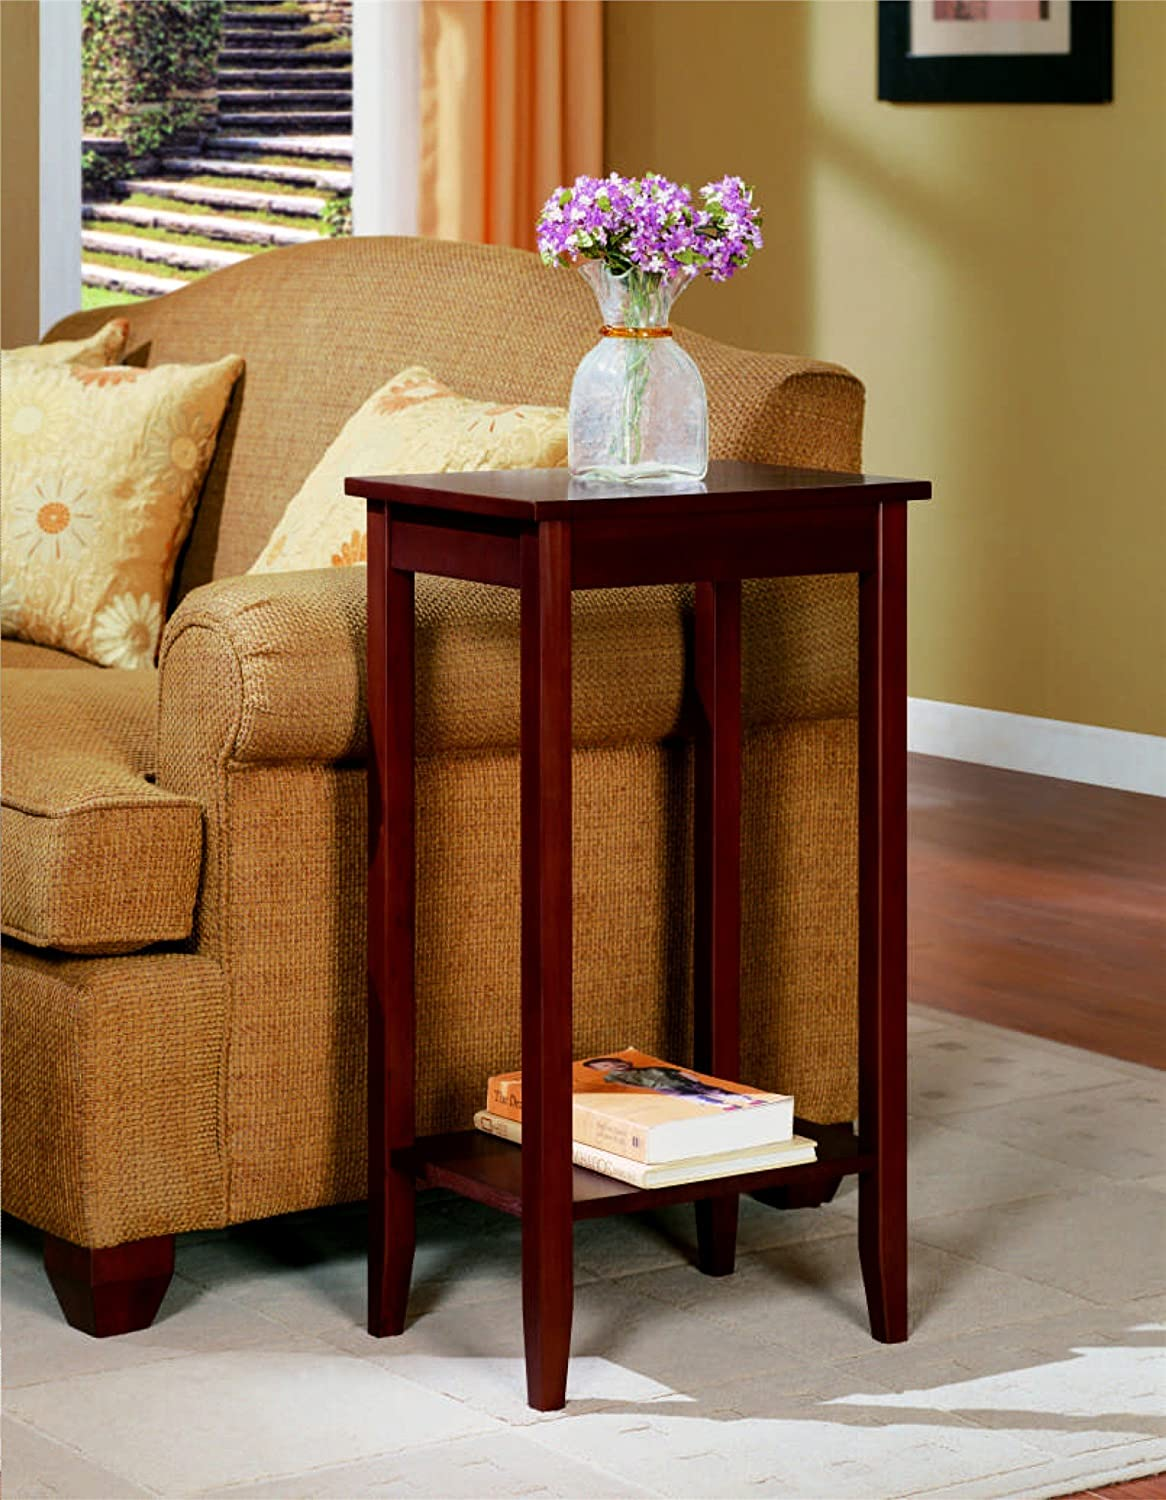 amazoncom dhp rosewood tall end table kitchen  dining -